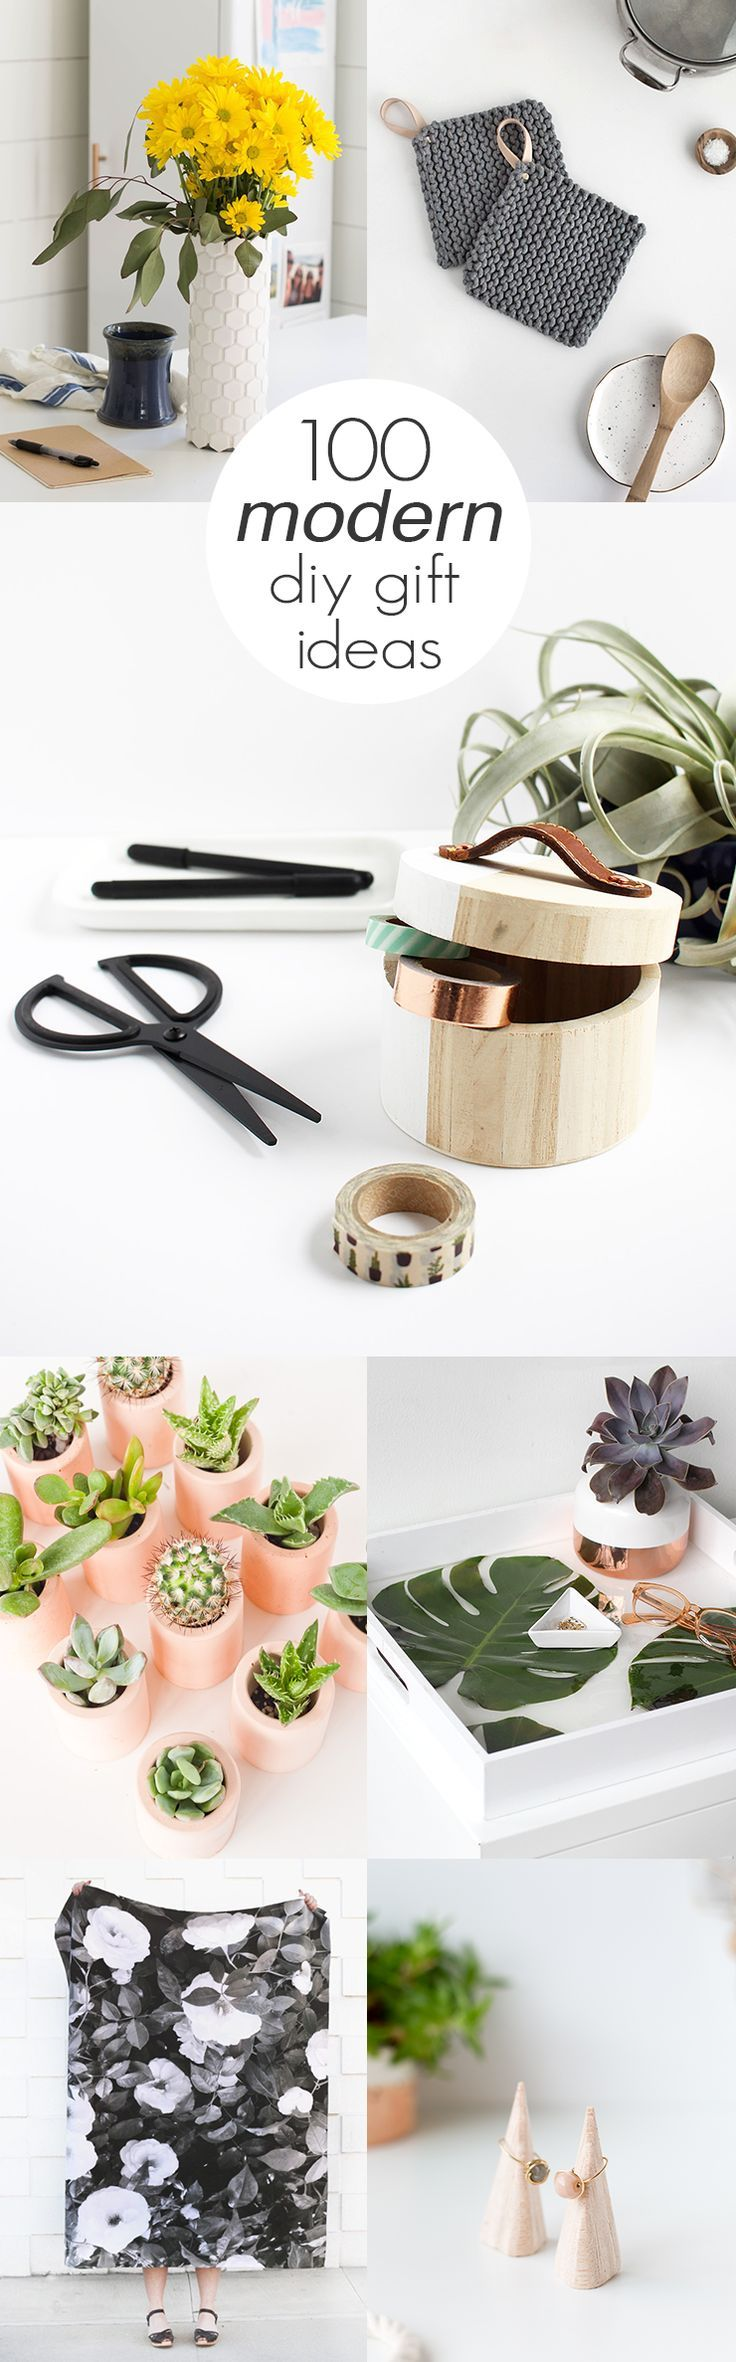 Its December but theres still time for handmade gifts! Check out these 100 modern DIY gift ideas for inspiration. . . . . . der Blog für den Gentleman - www.thegentlemanclub.de/blog